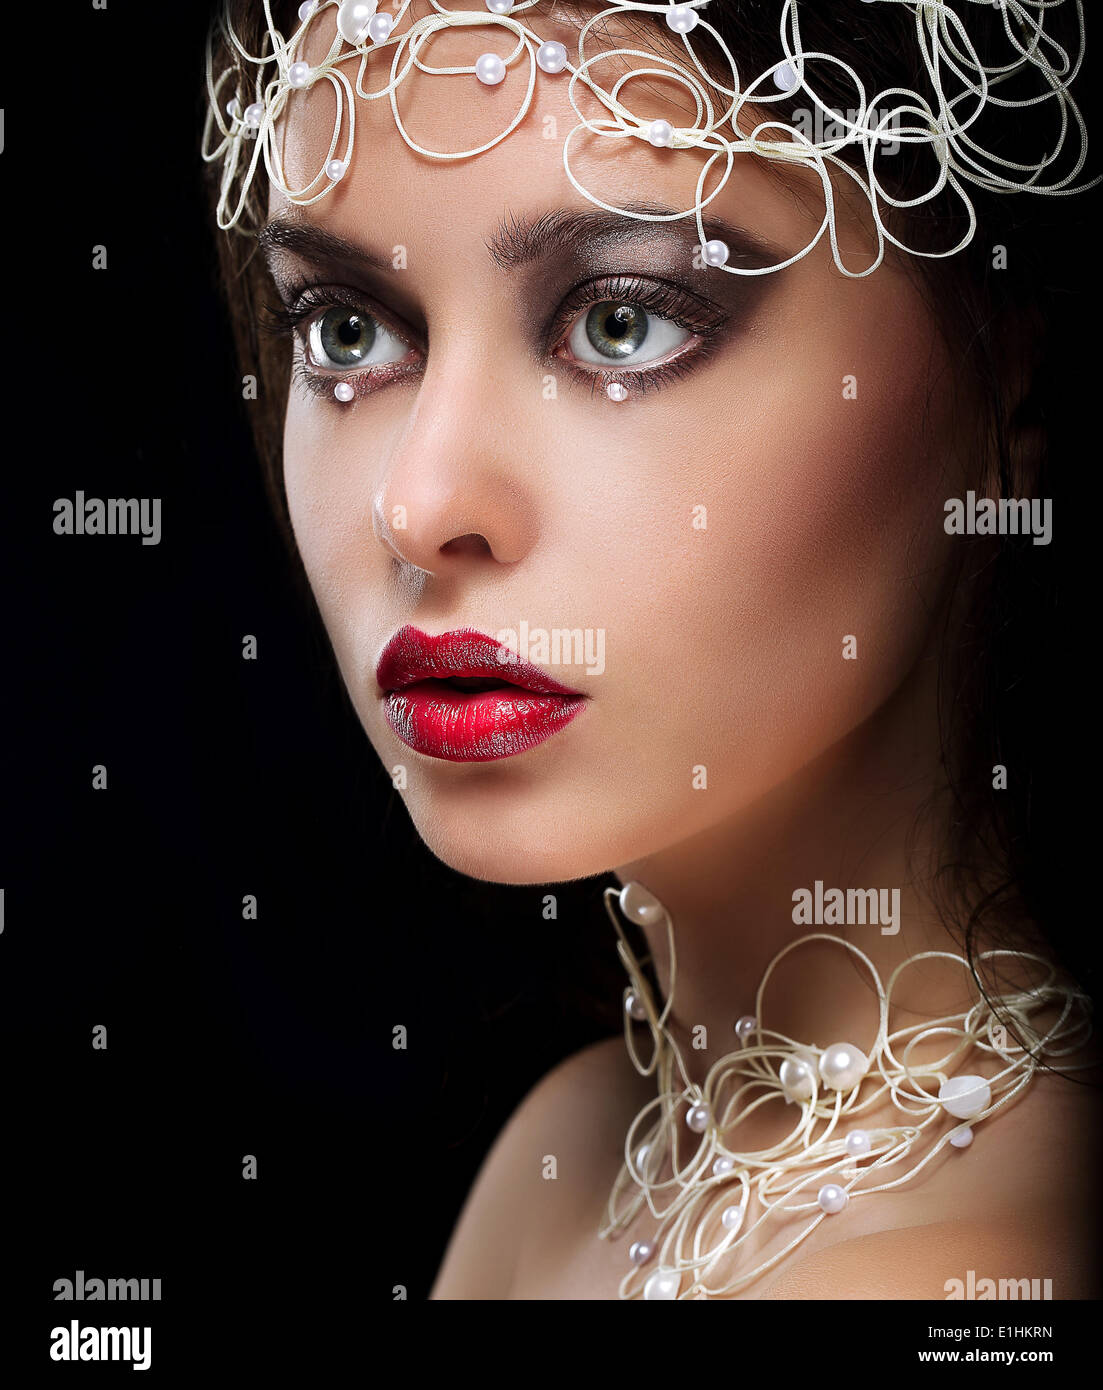 Decoration. Portrait of Gorgeous Woman with Pearls and Beads - Stock Image